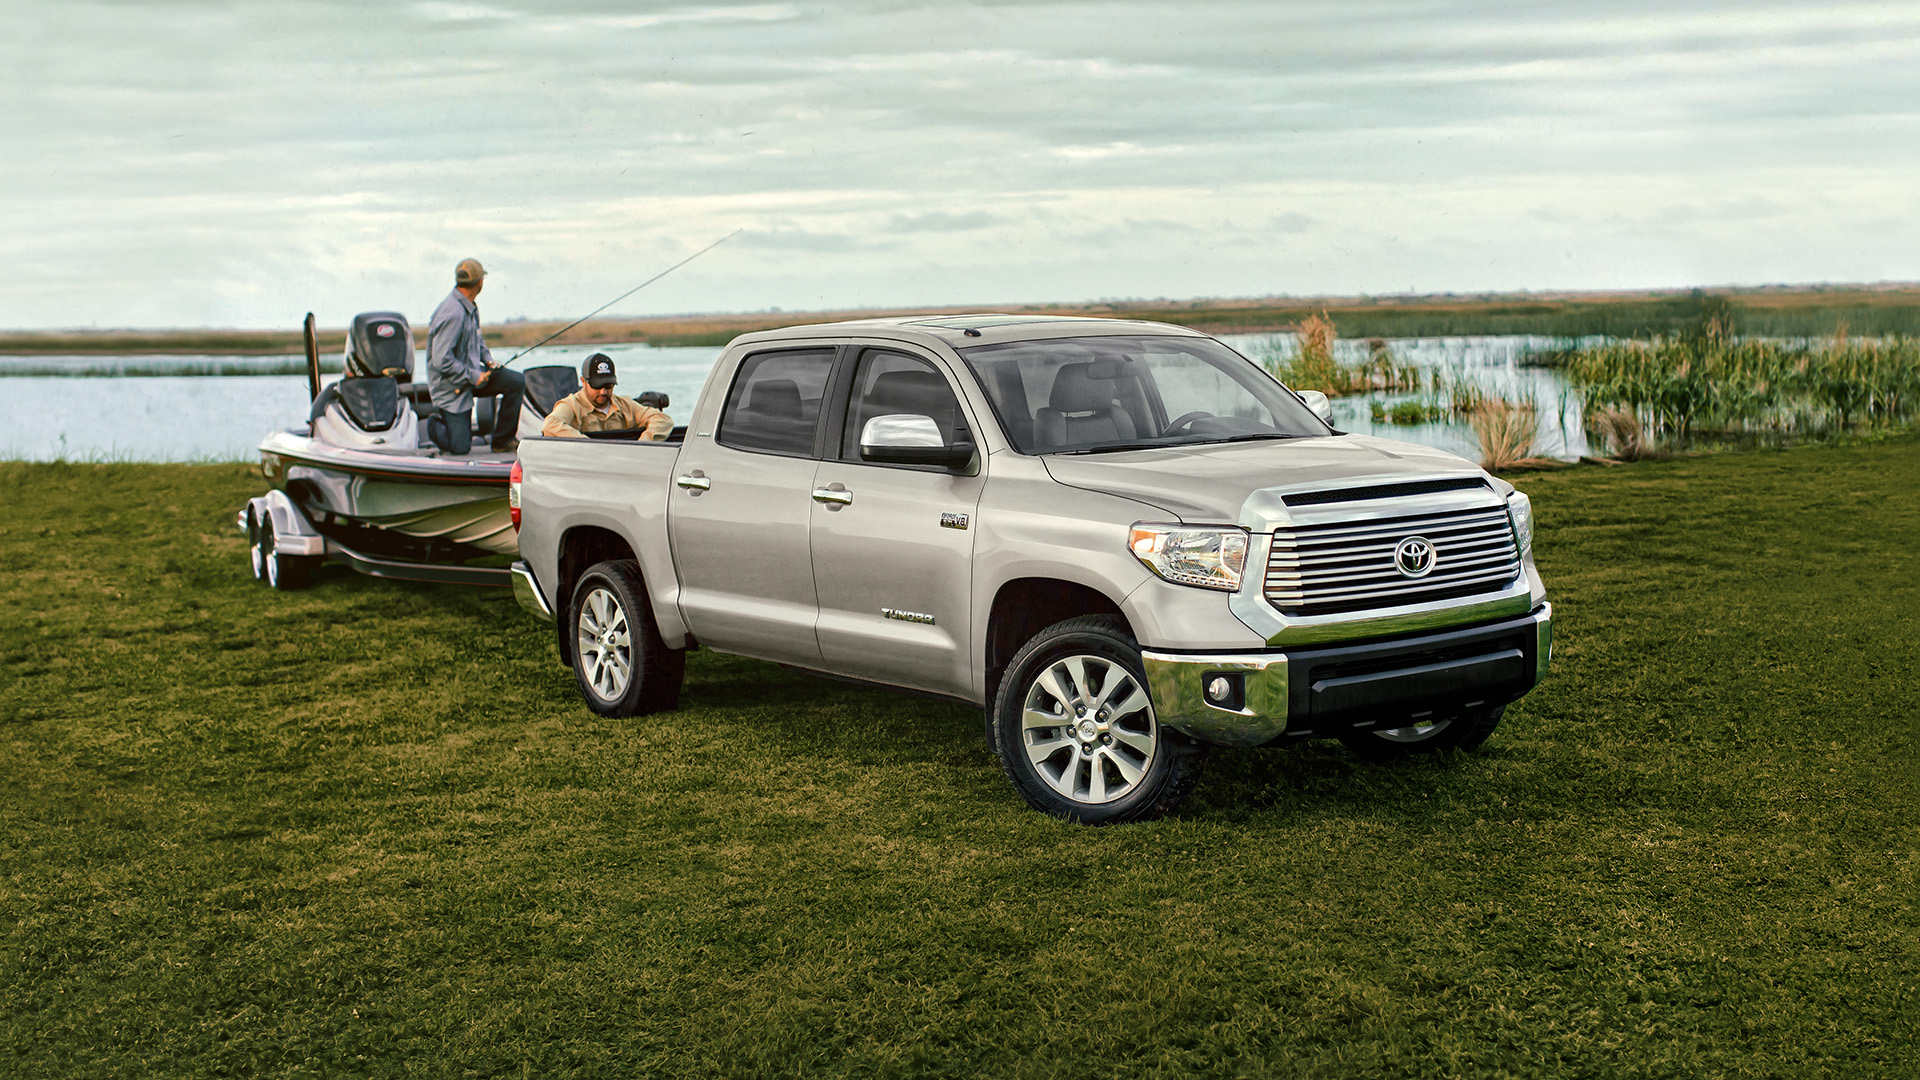 2017 Toyota Tundra Overview | The News Wheel